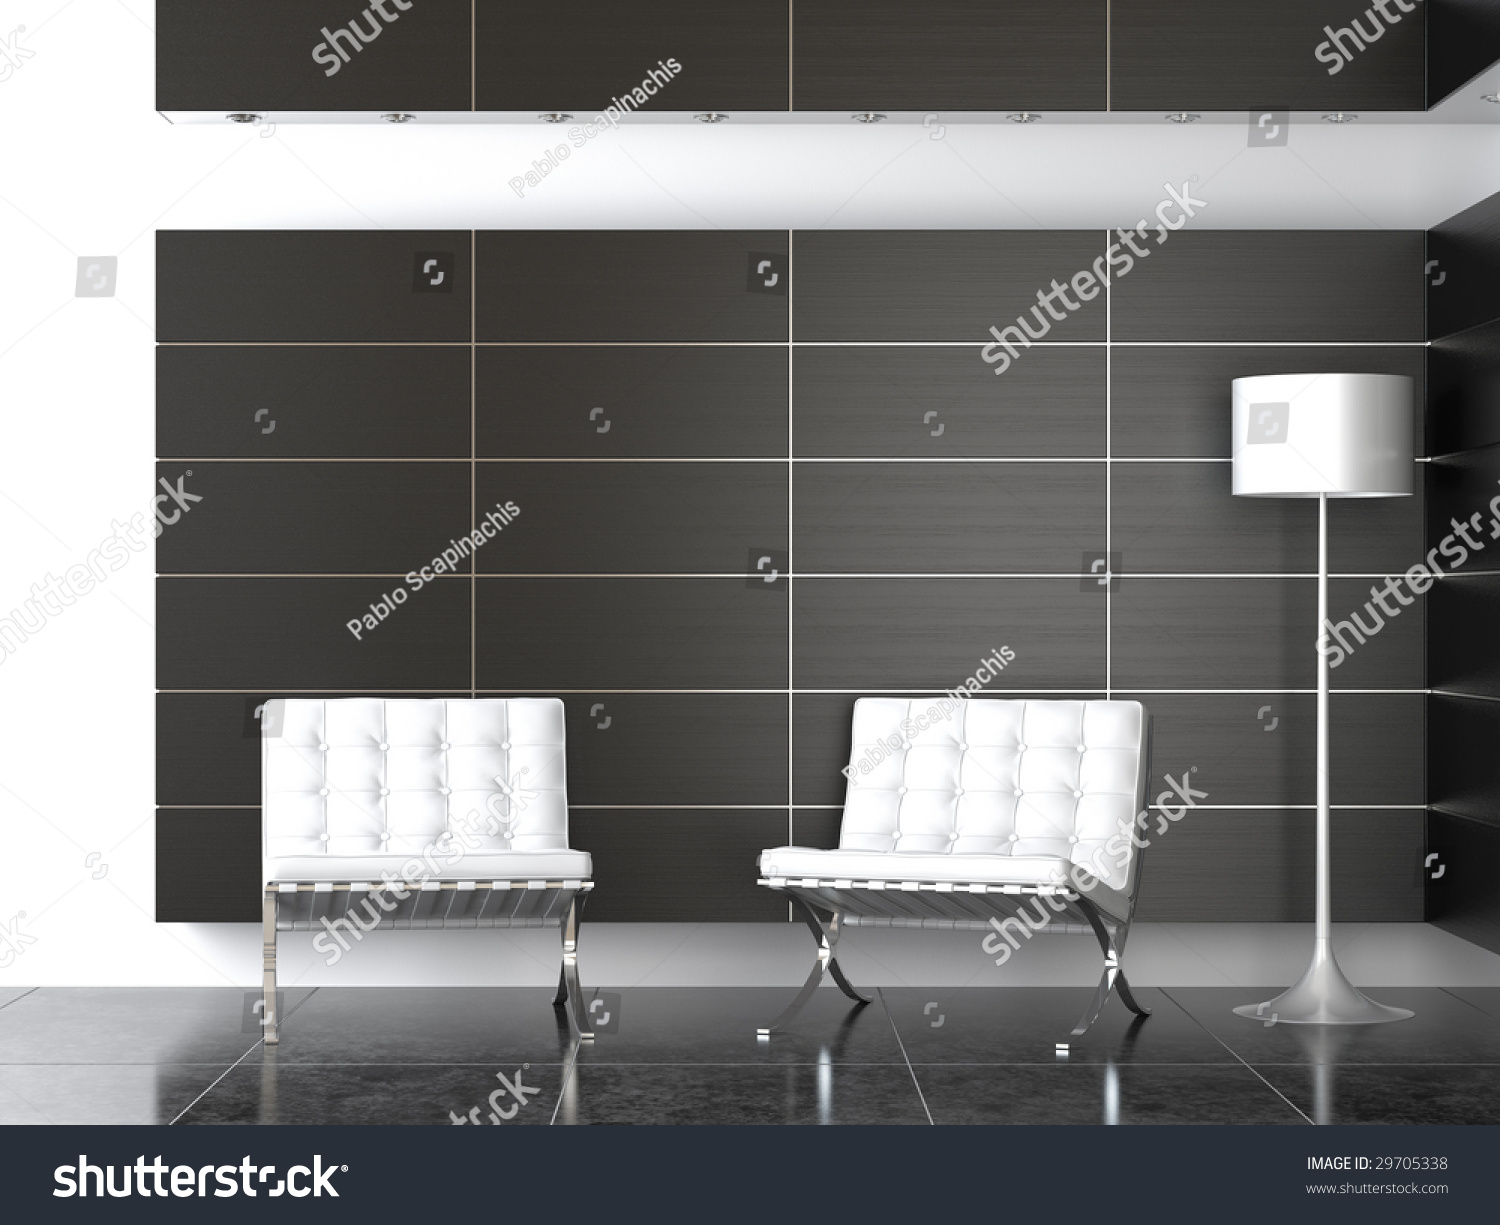 Interior Design Of Modern Reception With Two Barcelona Chairs And Lamp In Black White Colors